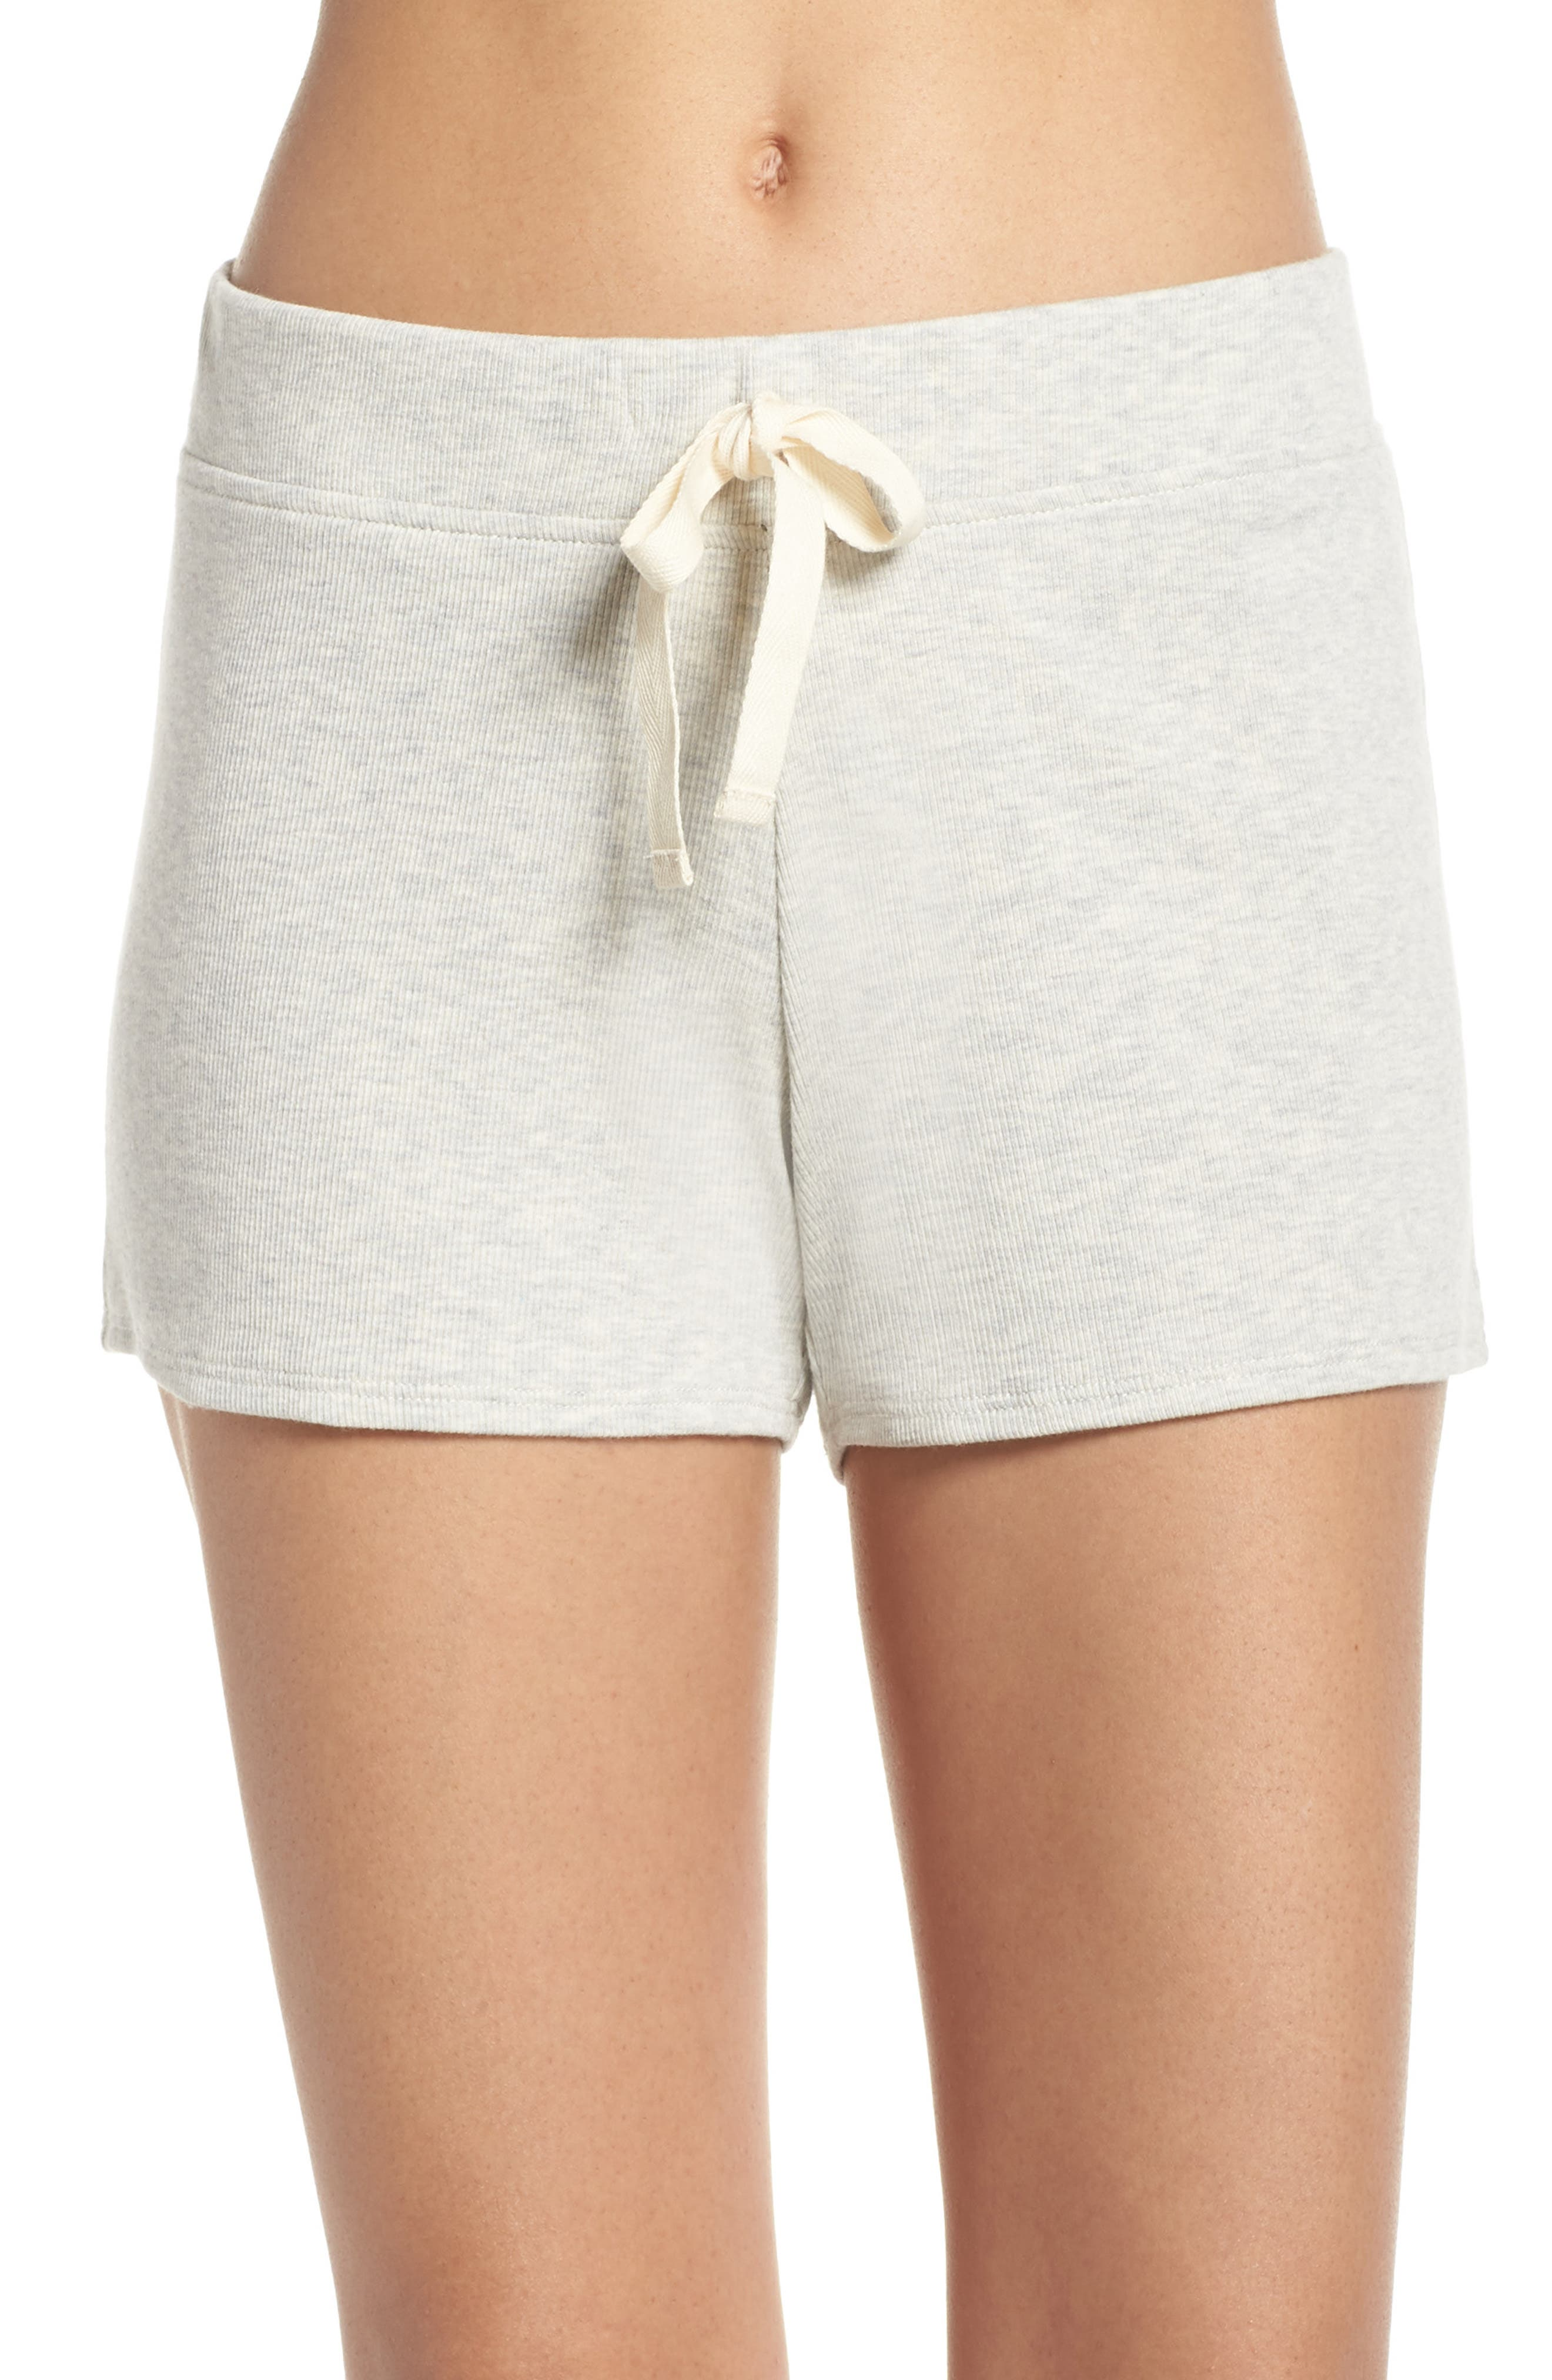 Daydream Lounge Shorts,                         Main,                         color, 061